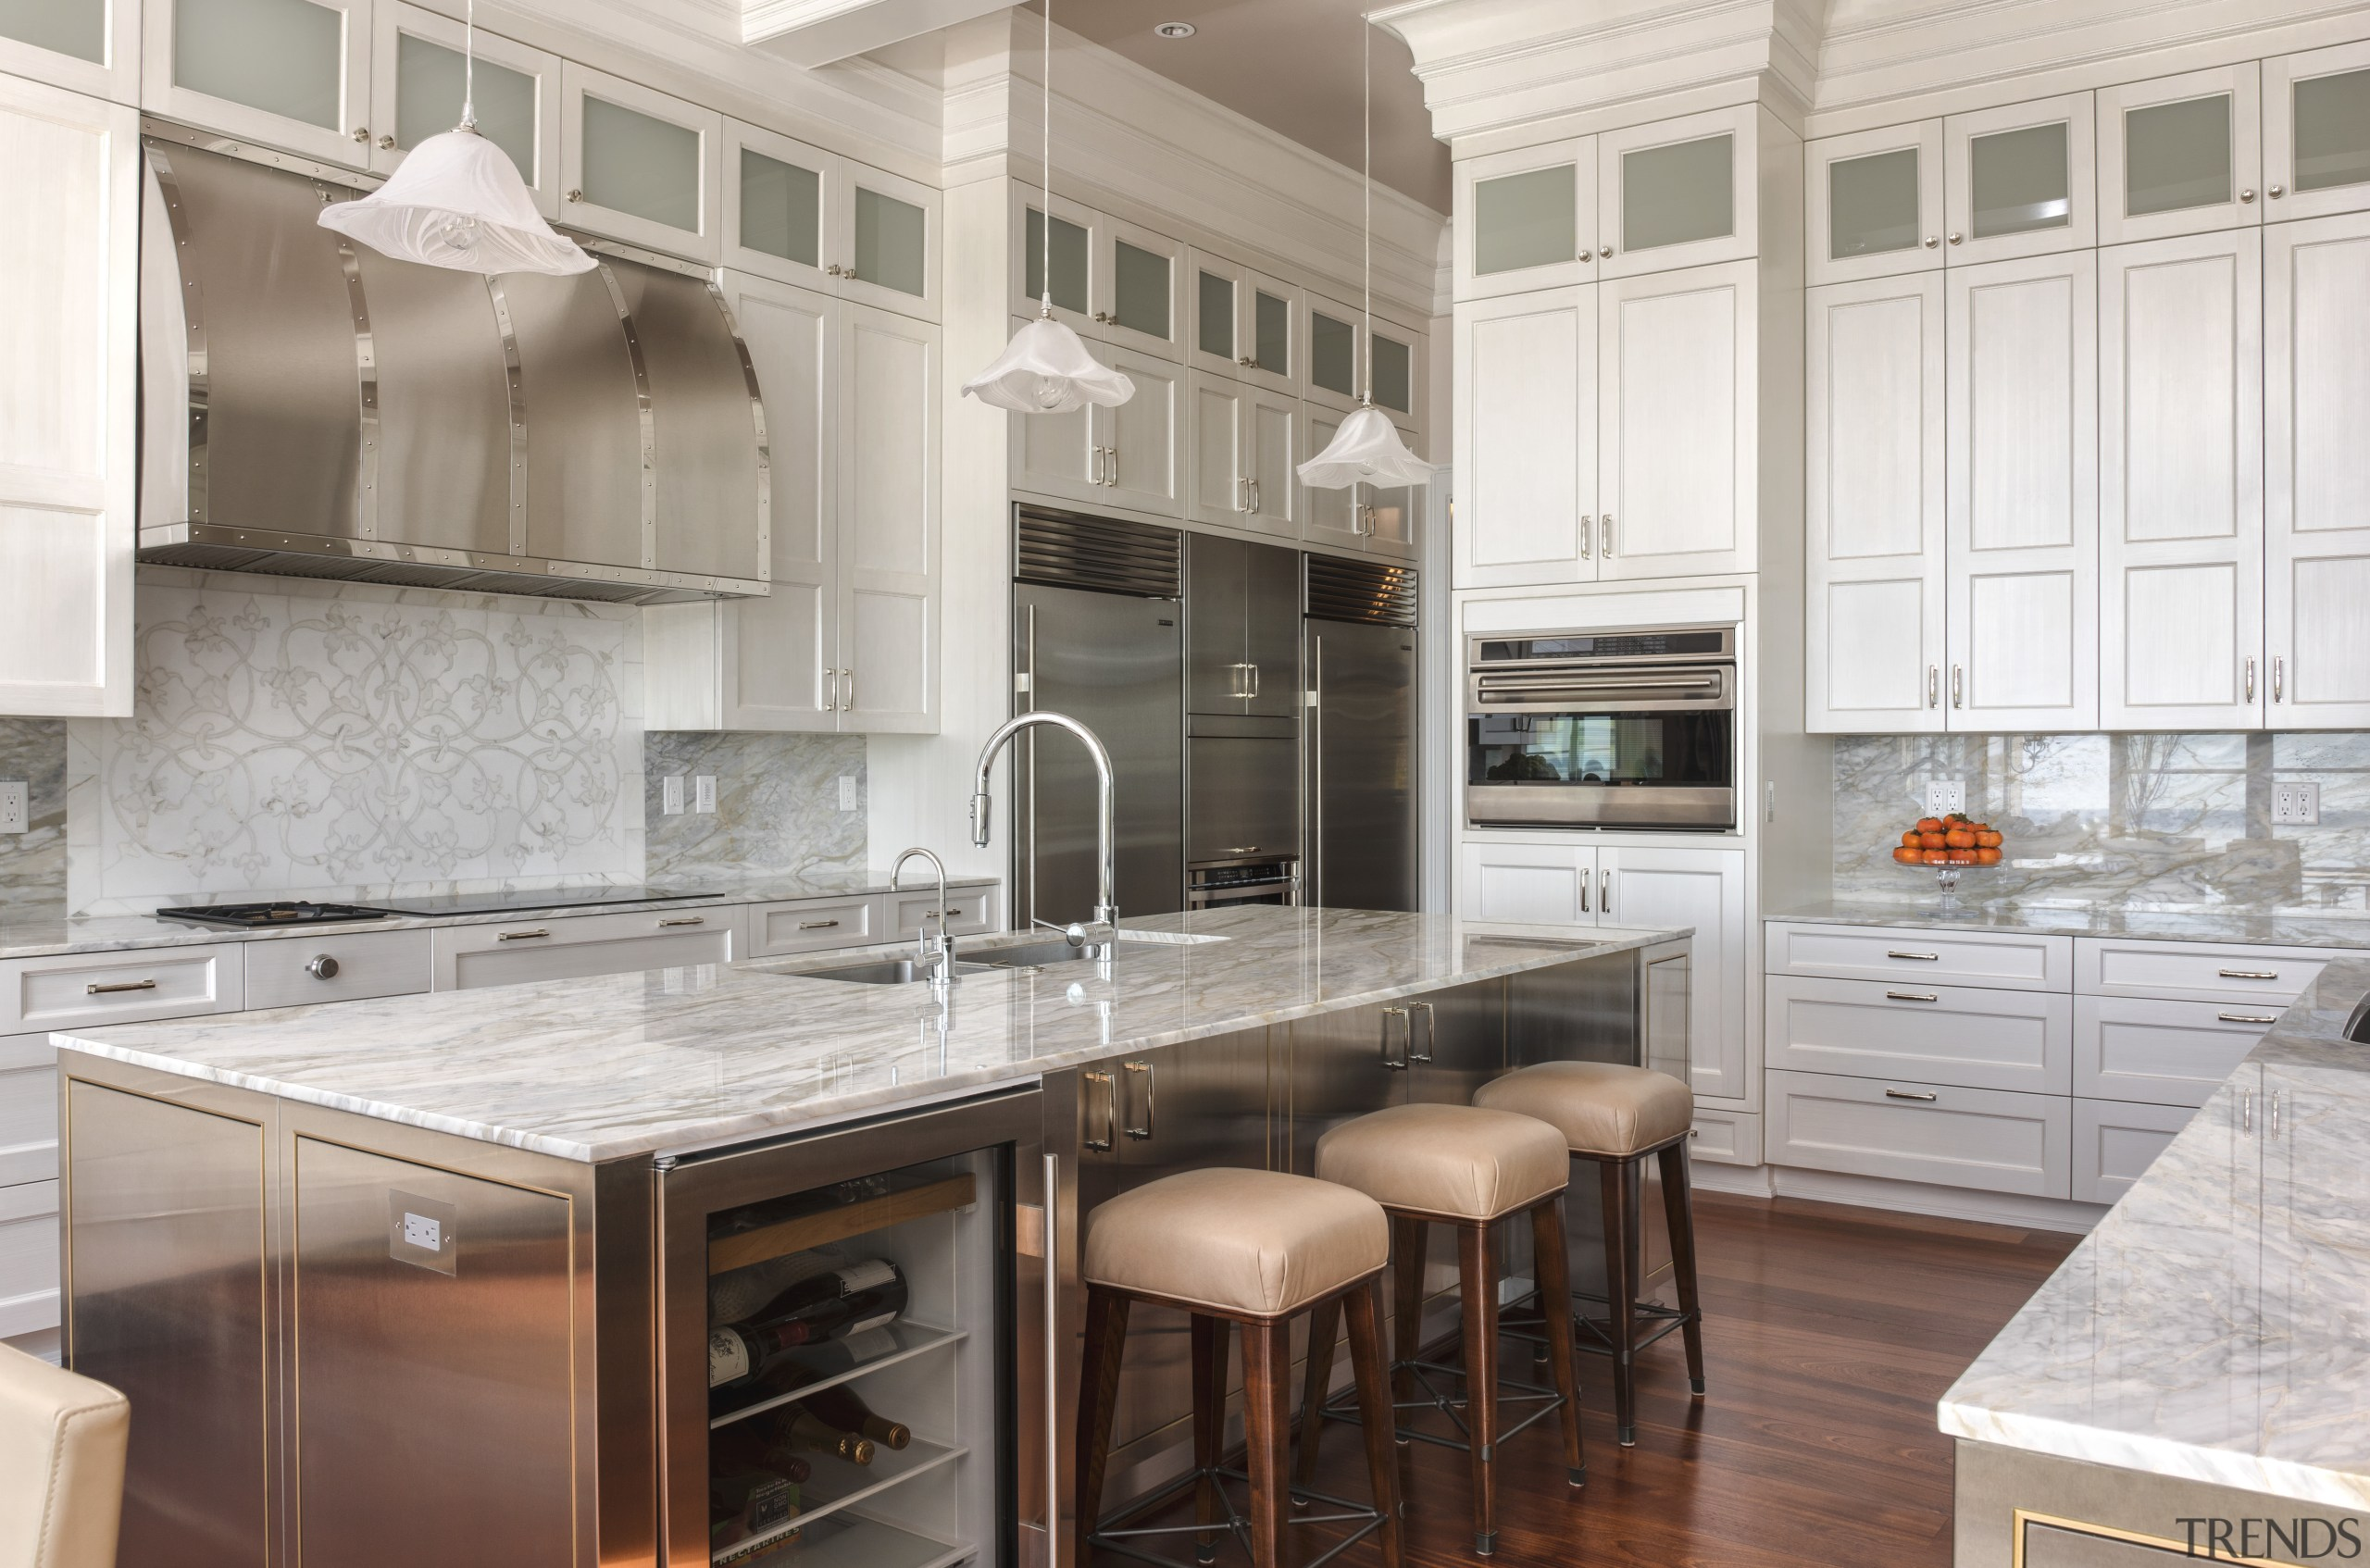 In this kitchen, both islands have prep sinks cabinetry, countertop, cuisine classique, interior design, kitchen, gray